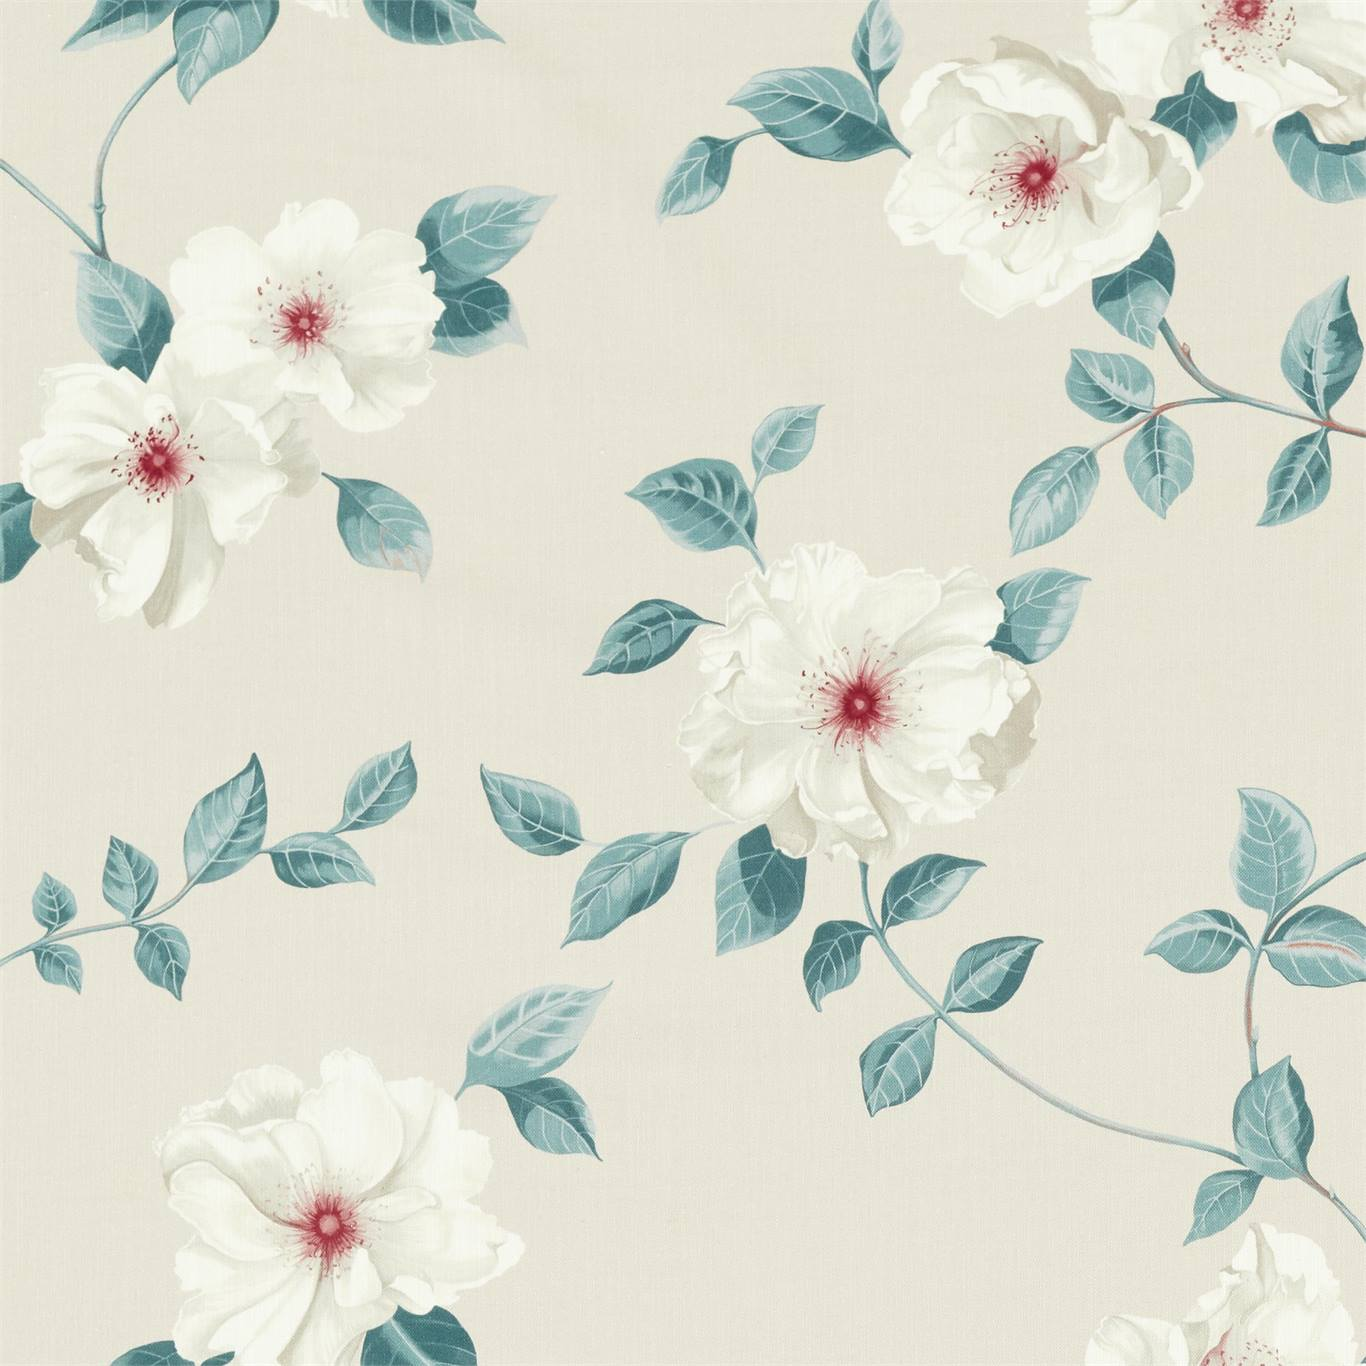 DNTF226736 Collection - National Trust Fabric